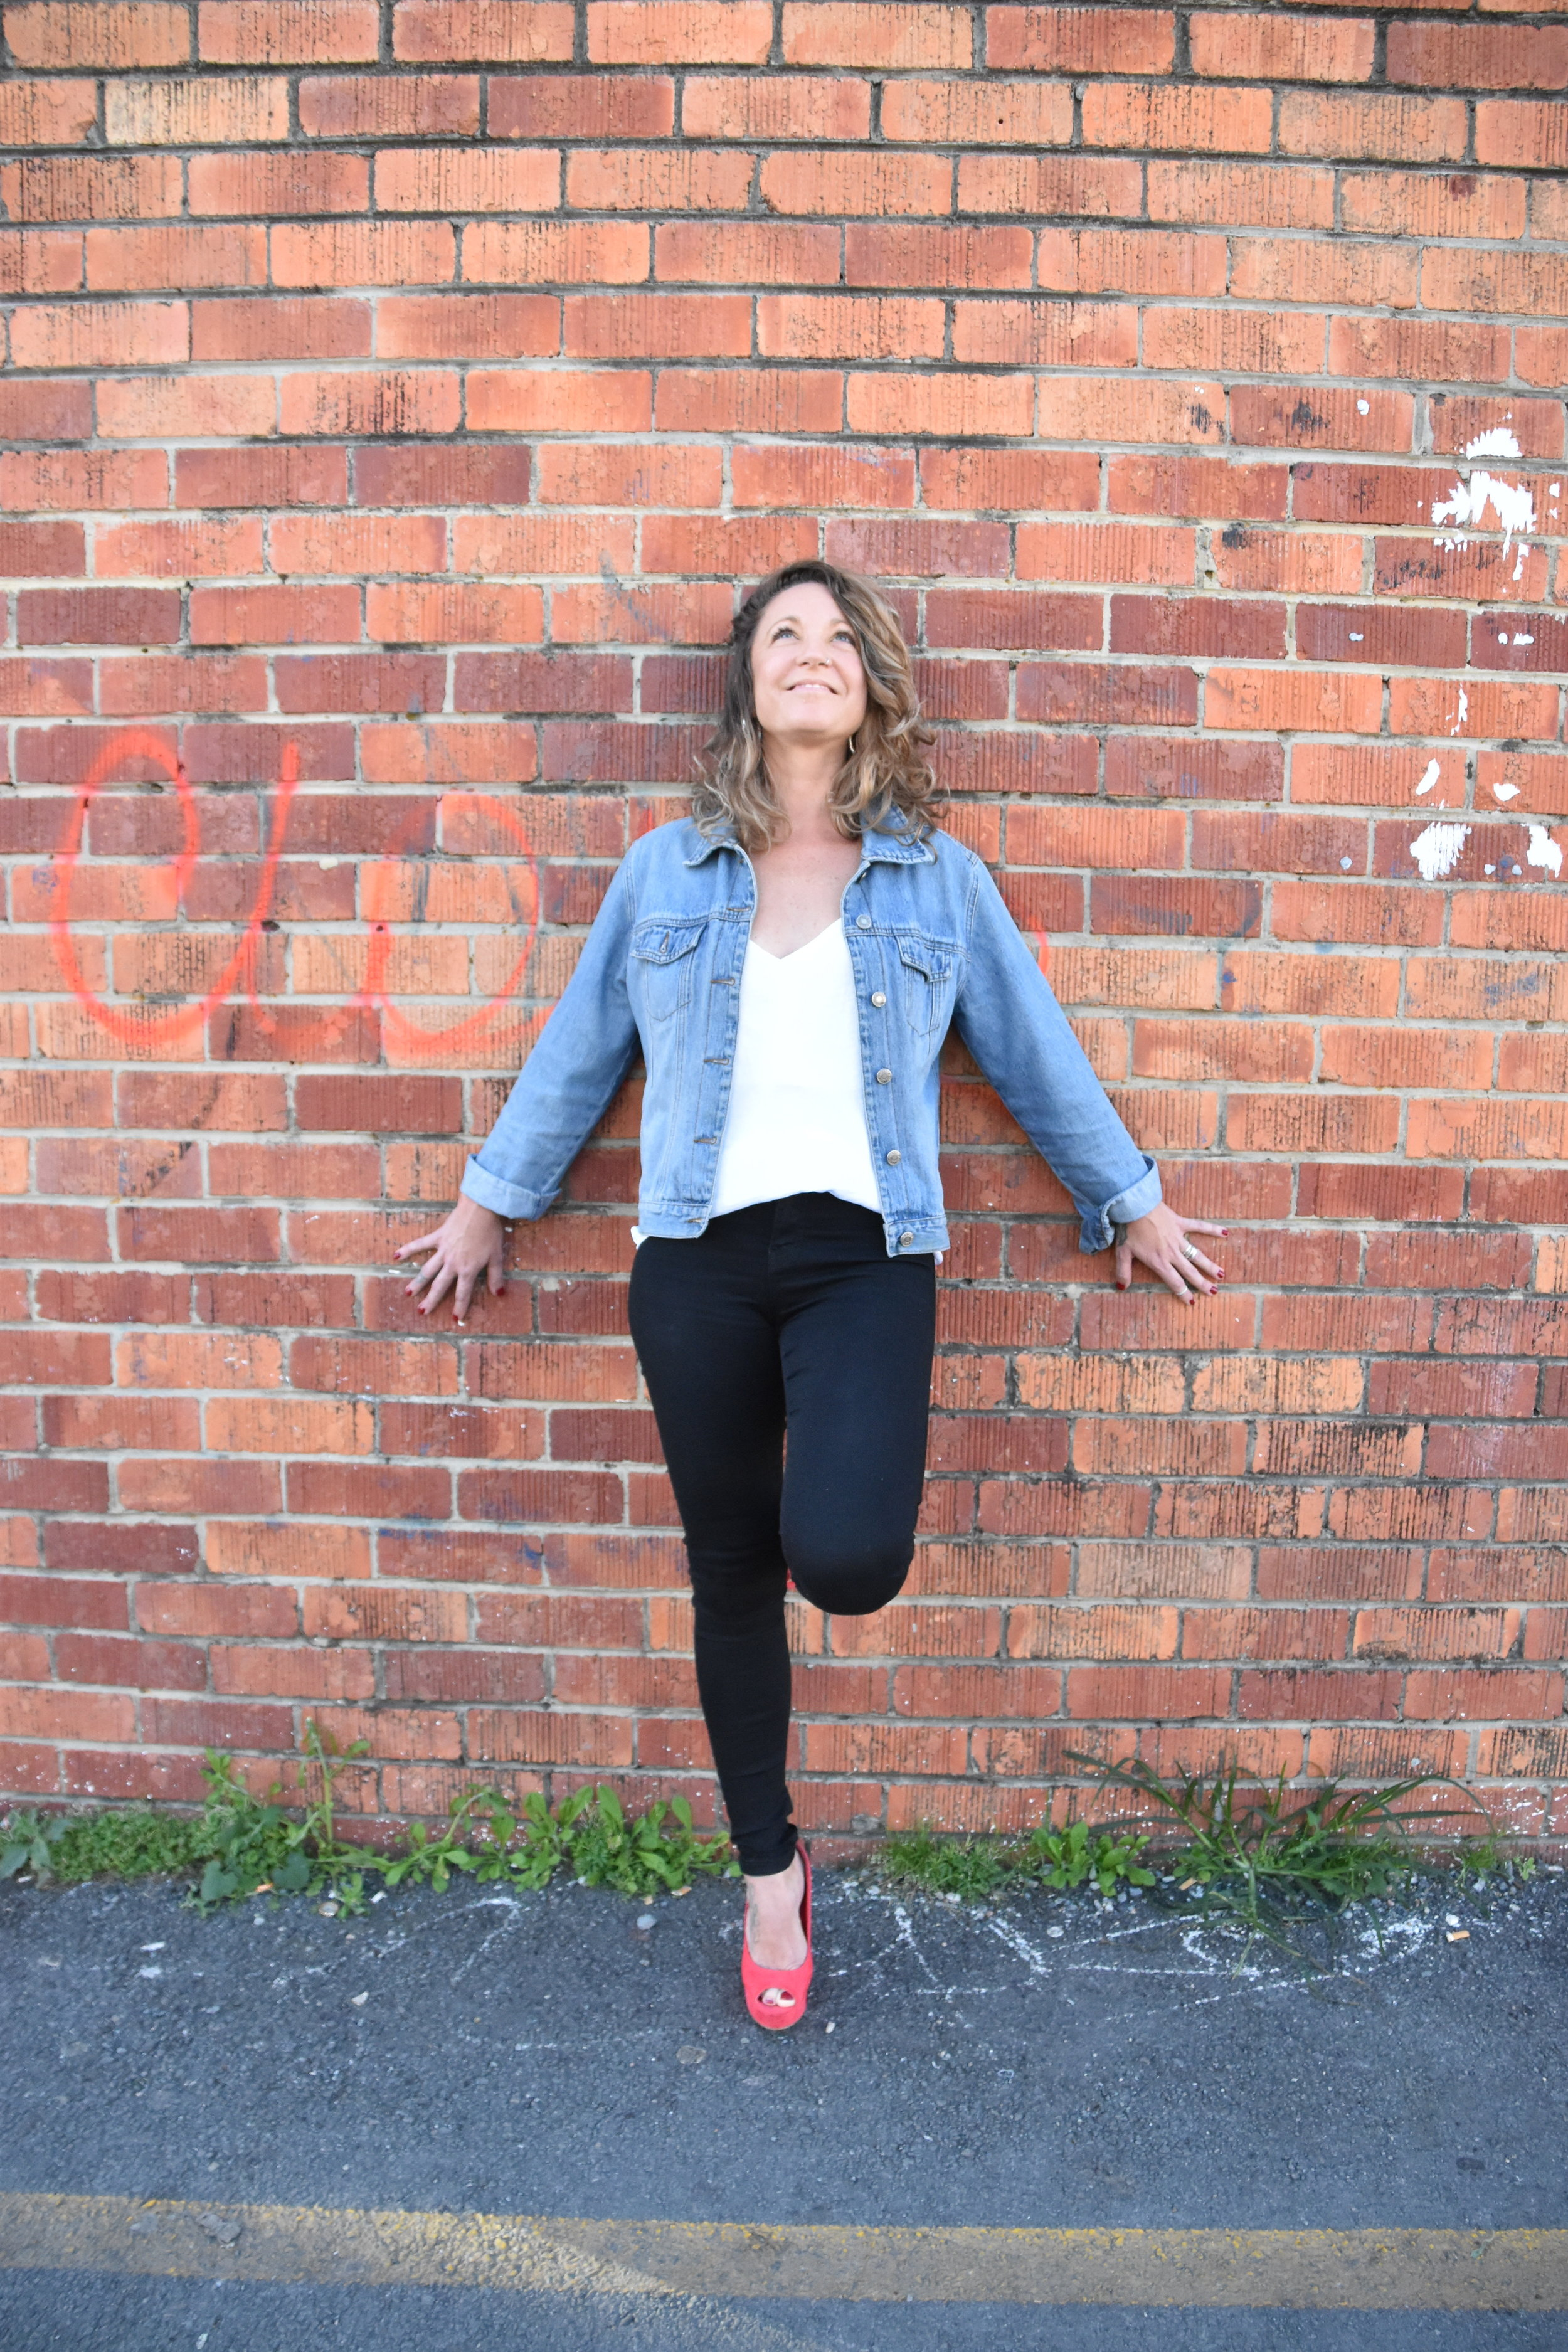 about your coach - Hey babe! I'm Katrina Hahling, Confidence + Purpose Coach.I've made it my Mission to help creative, fun-loving, passionate women have the confidence and self-worth to show up and do their big work in the world.I spent nearly two decades chasing the answers to two core questions:What do I want to be when I grow up? andWhat if I'm not good enough?I chased my tail until I stopped and face up to some pretty big fears and doubts.Now I help women just like you take the big leap into work that really lights them up, as opposed to the work you fell into or the career your parents wanted for you.I know it's scary but…Are you ready to find your purpose?